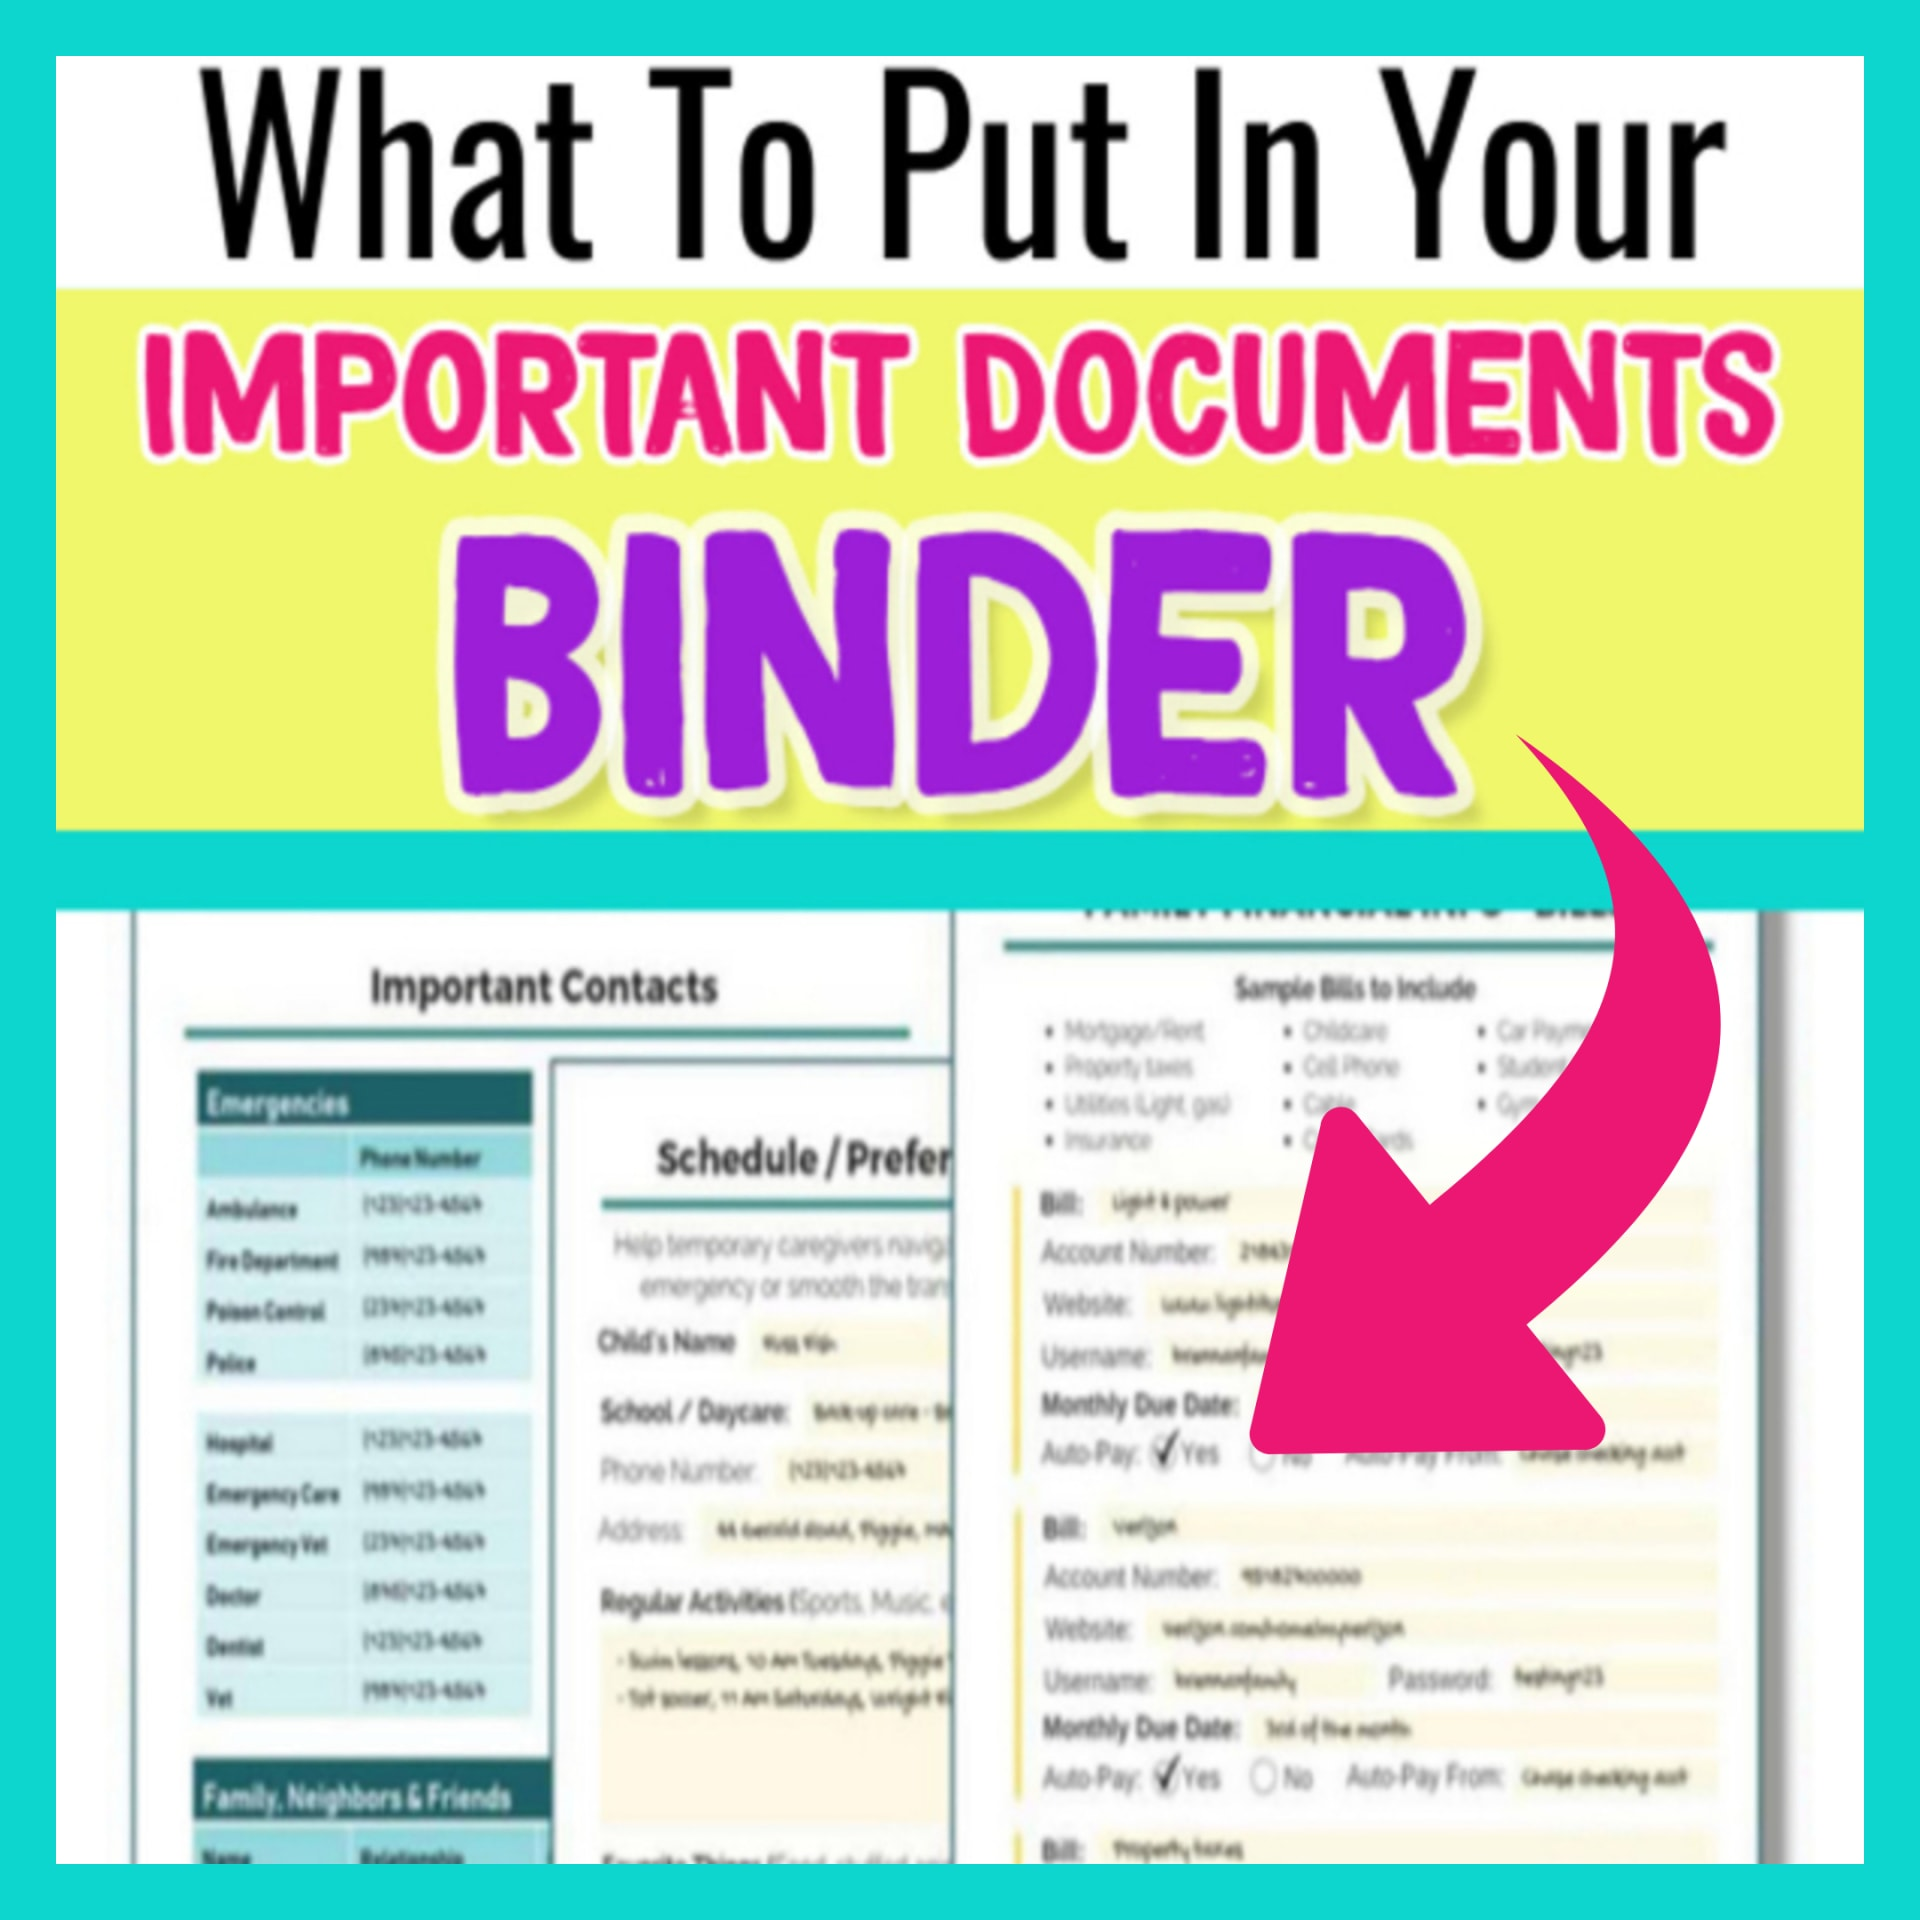 Important Documents Binder Ideas for Organizing a Simple Important Documents Finder and Family Emergency Binder.  Simple File Organization Tips for Emergency Kits and In Case of Emergency Binders for Families